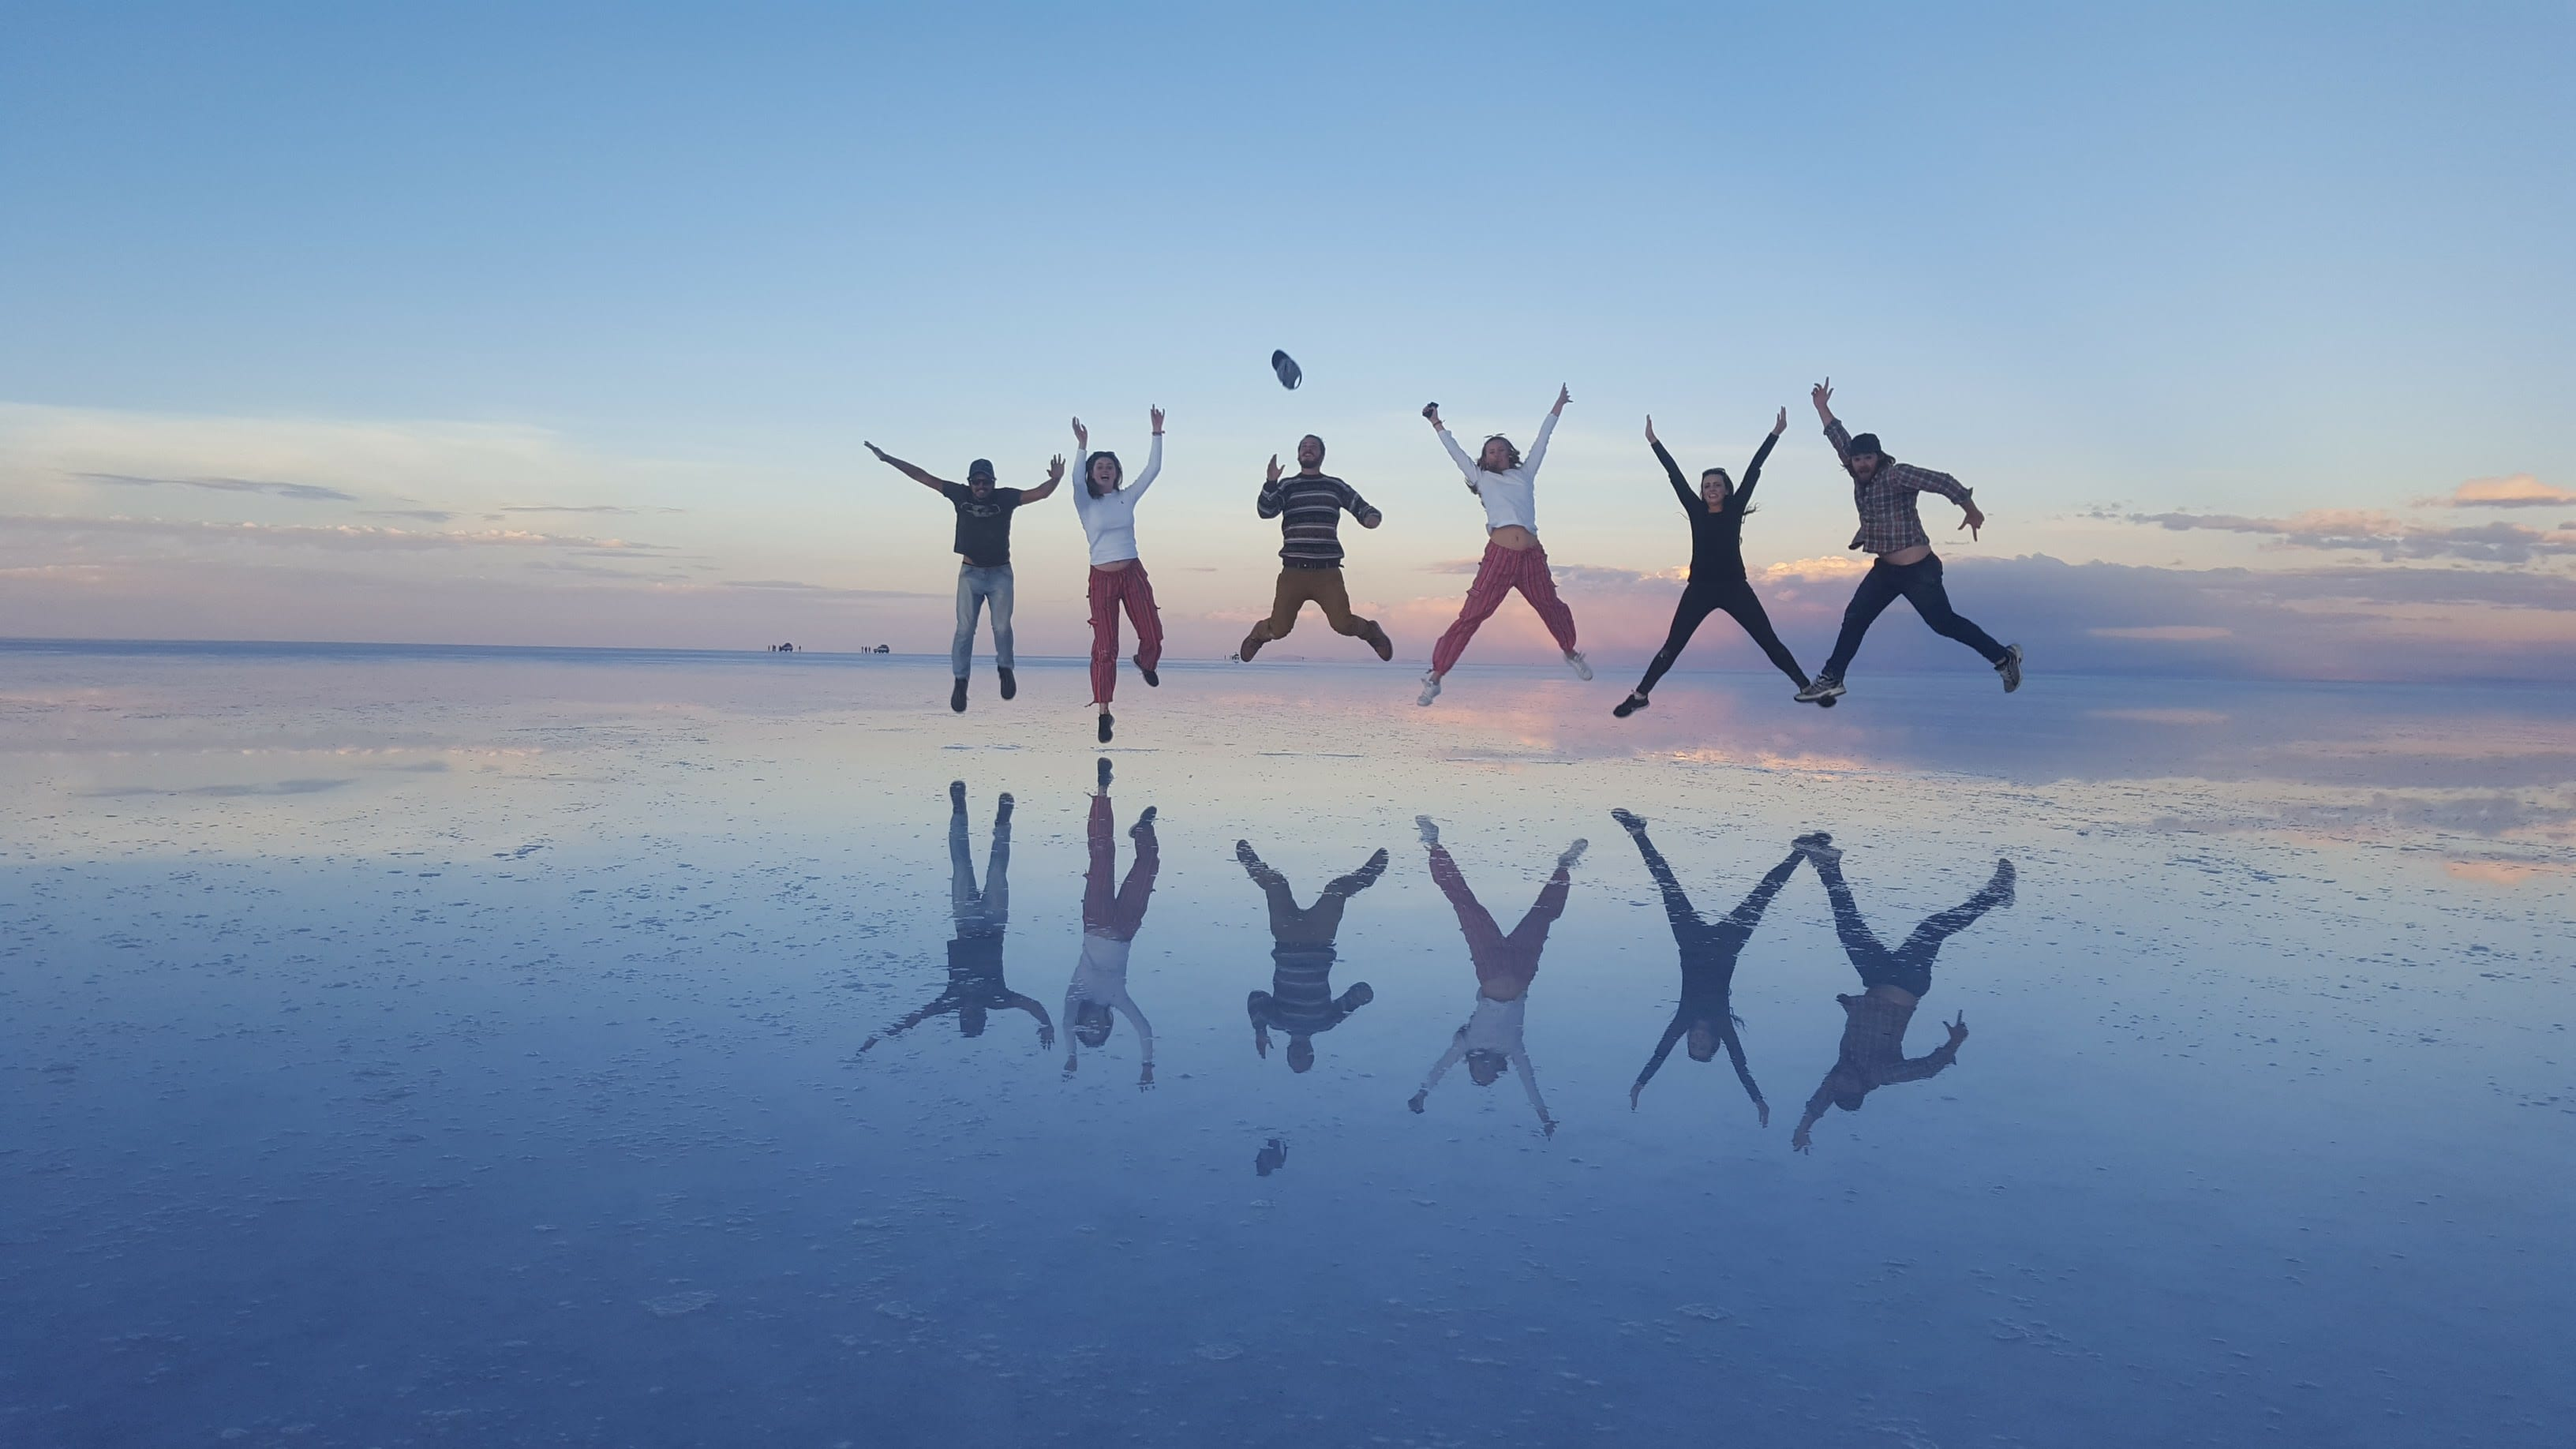 An-image-showing-the-Salt-Flat-Tour-in-Uyuni-Bolivia